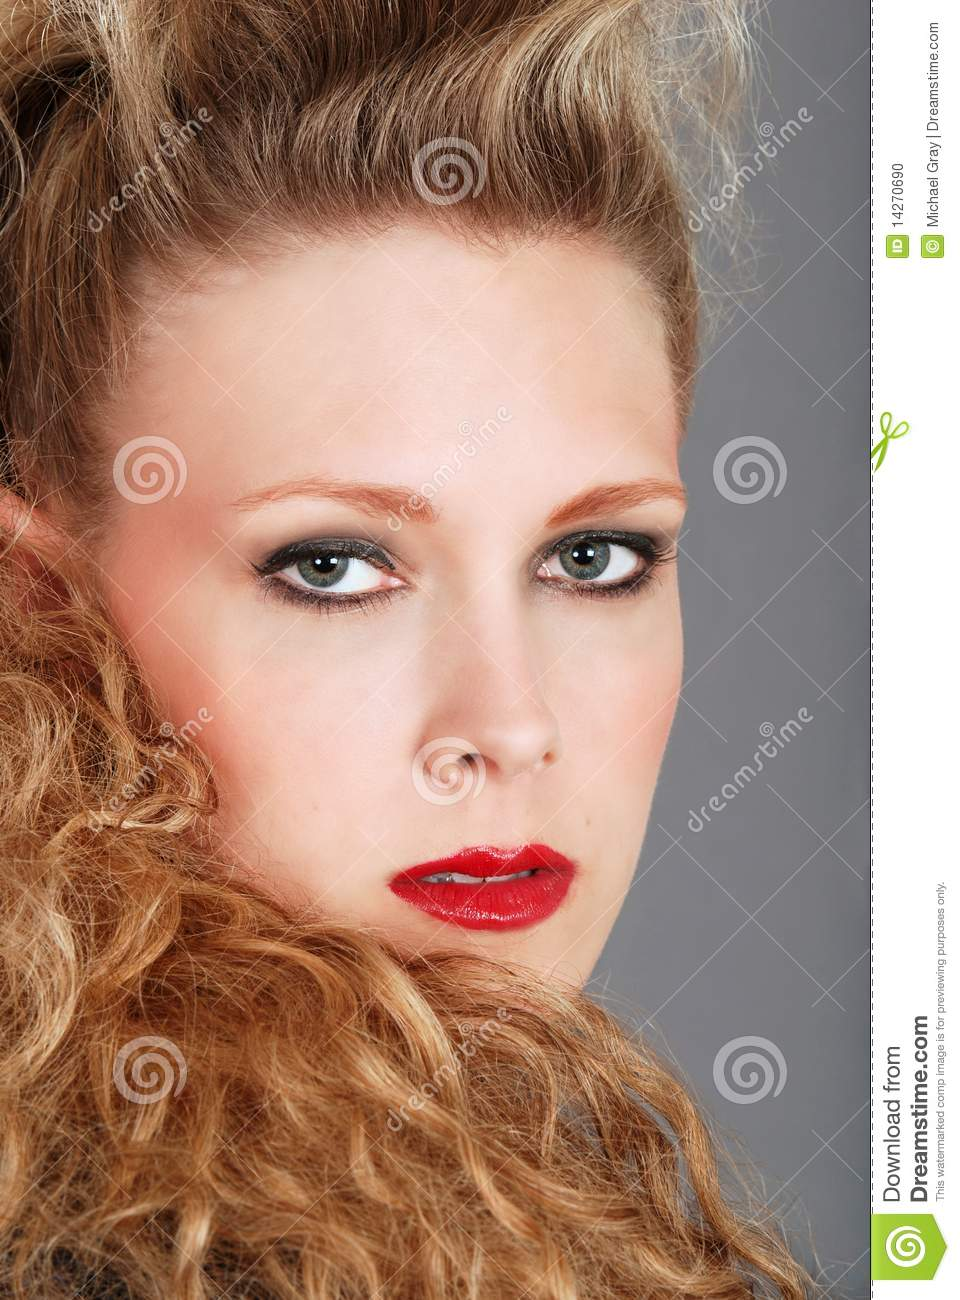 Headshot woman with curly hair